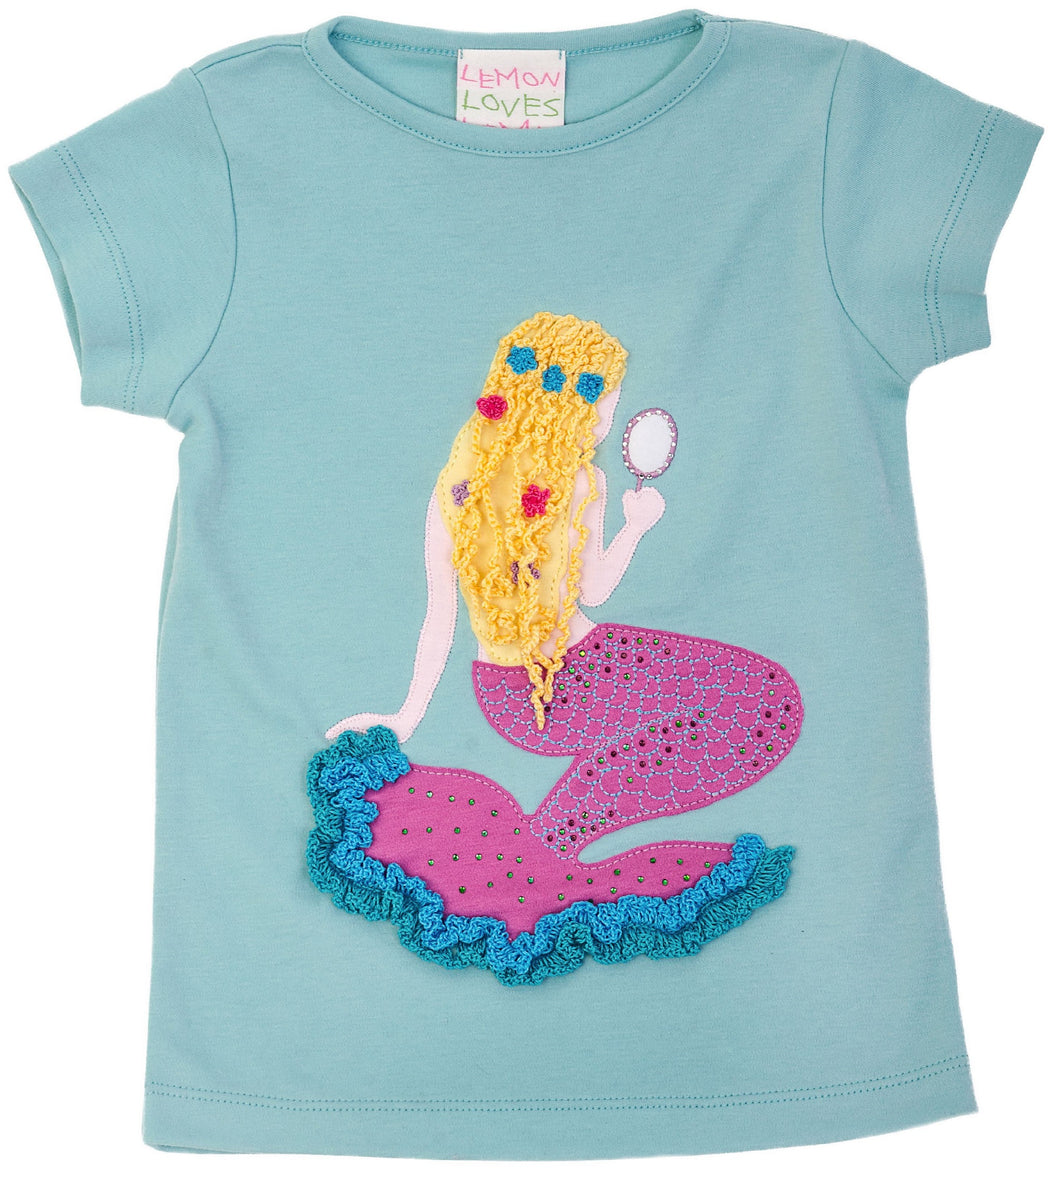 Mermaid's Beauty Tee Pastel Turquoise